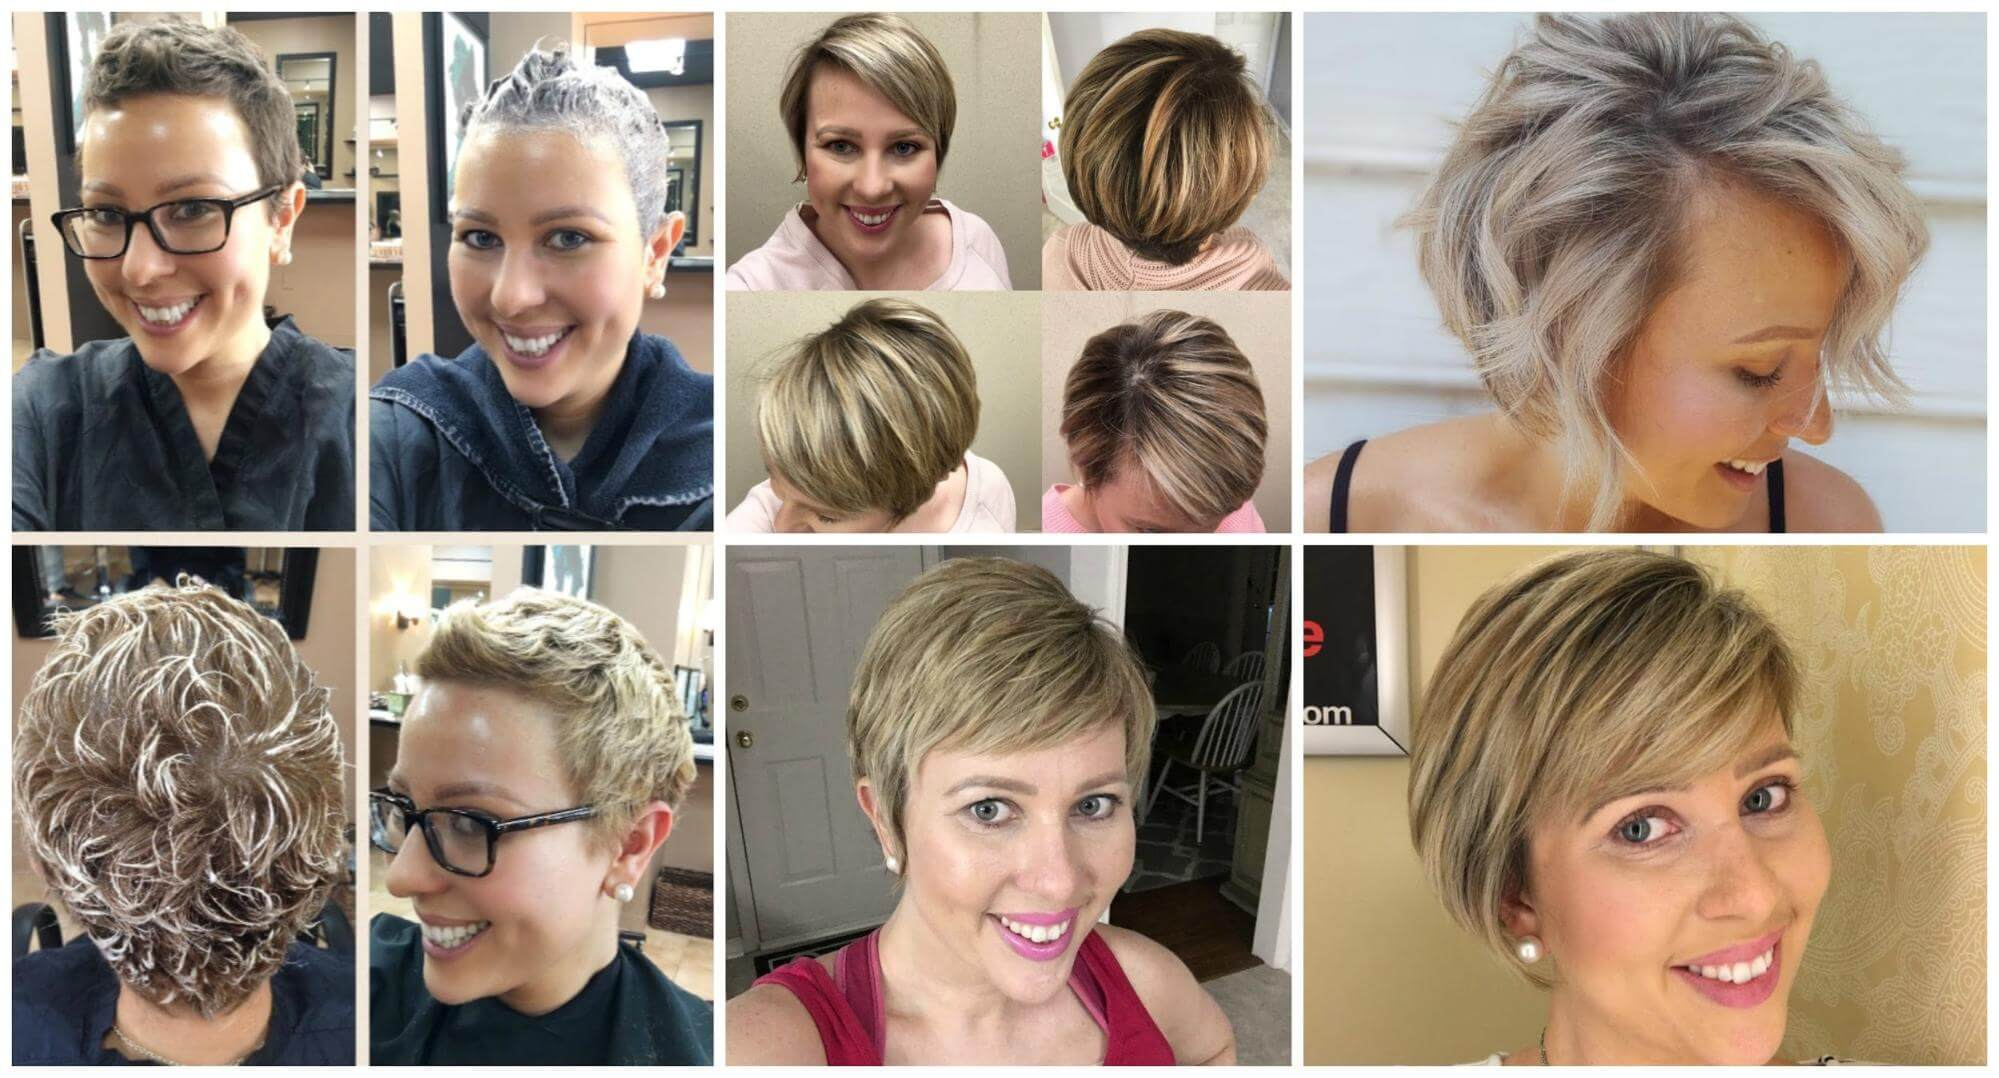 post-chemo hair growth & styling tips - my cancer chic